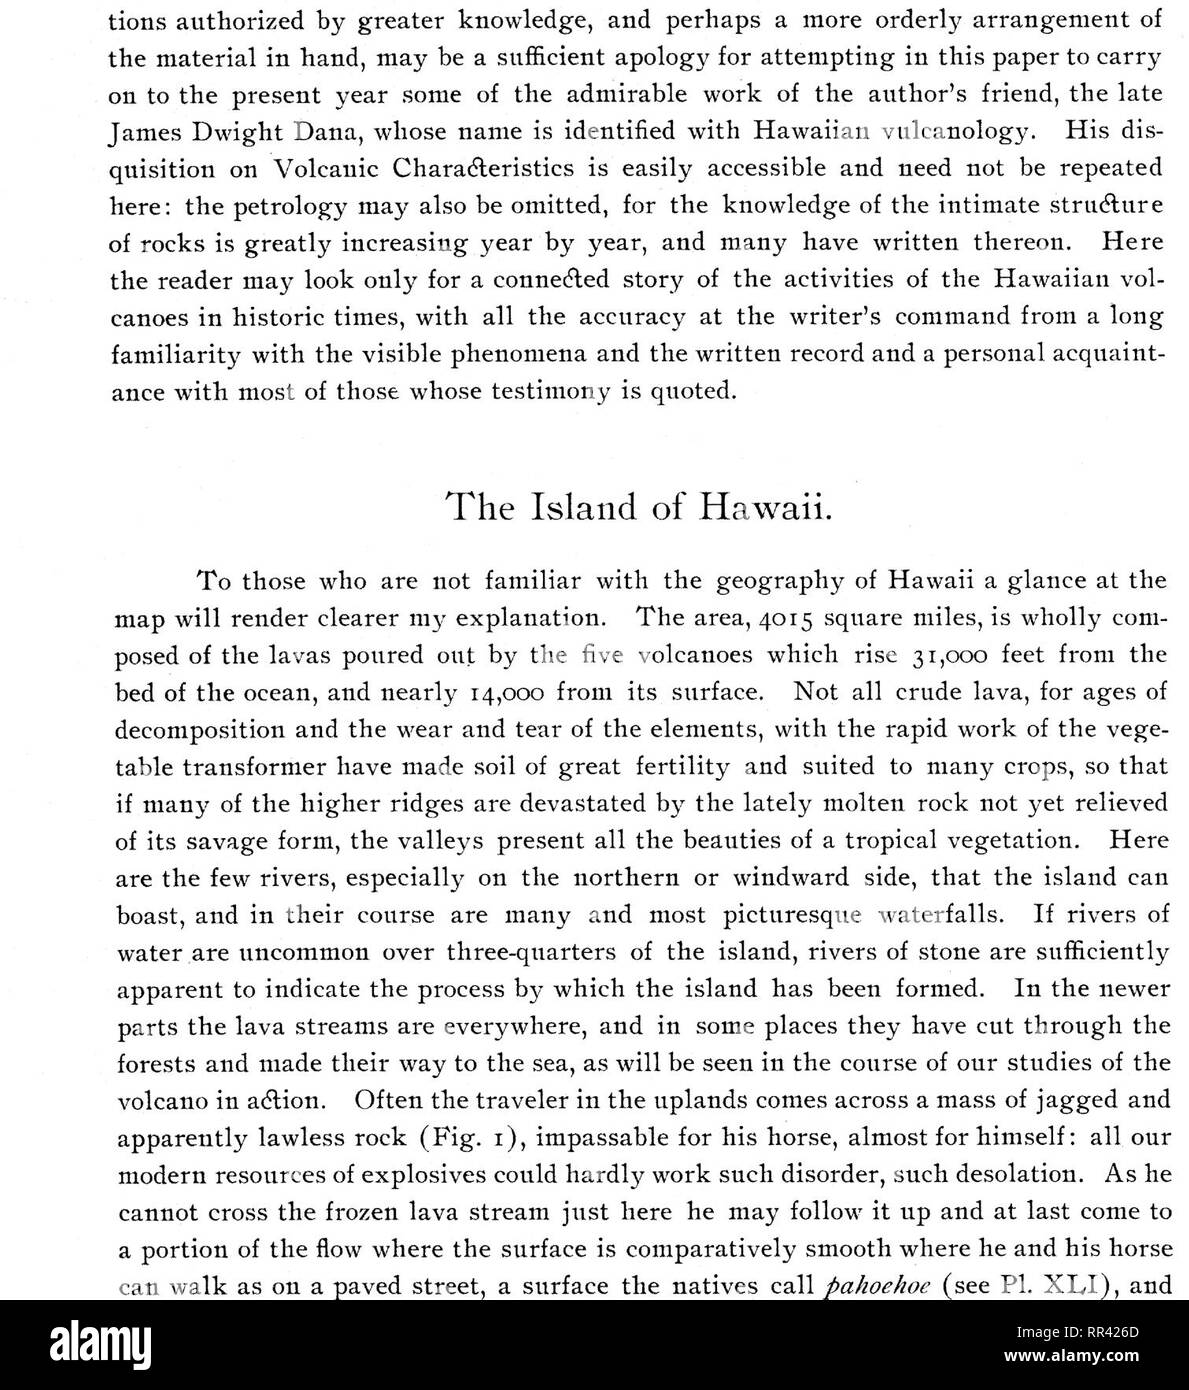 . Memoirs of the Bernice Pauahi Bishop Museum of Polynesian Ethnology and Natural History. Natural history; Ethnology. ap€>kf/¥. AoM /^ Aif^'/t/a. /timi/^^^ /0lac Co/ay a/ <!rat^.ry?/r*ejr/- <5c//t^y Afap.. Please note that these images are extracted from scanned page images that may have been digitally enhanced for readability - coloration and appearance of these illustrations may not perfectly resemble the original work.. Bernice Pauahi Bishop Museum. Honolulu : Bishop Museum Press Stock Photo